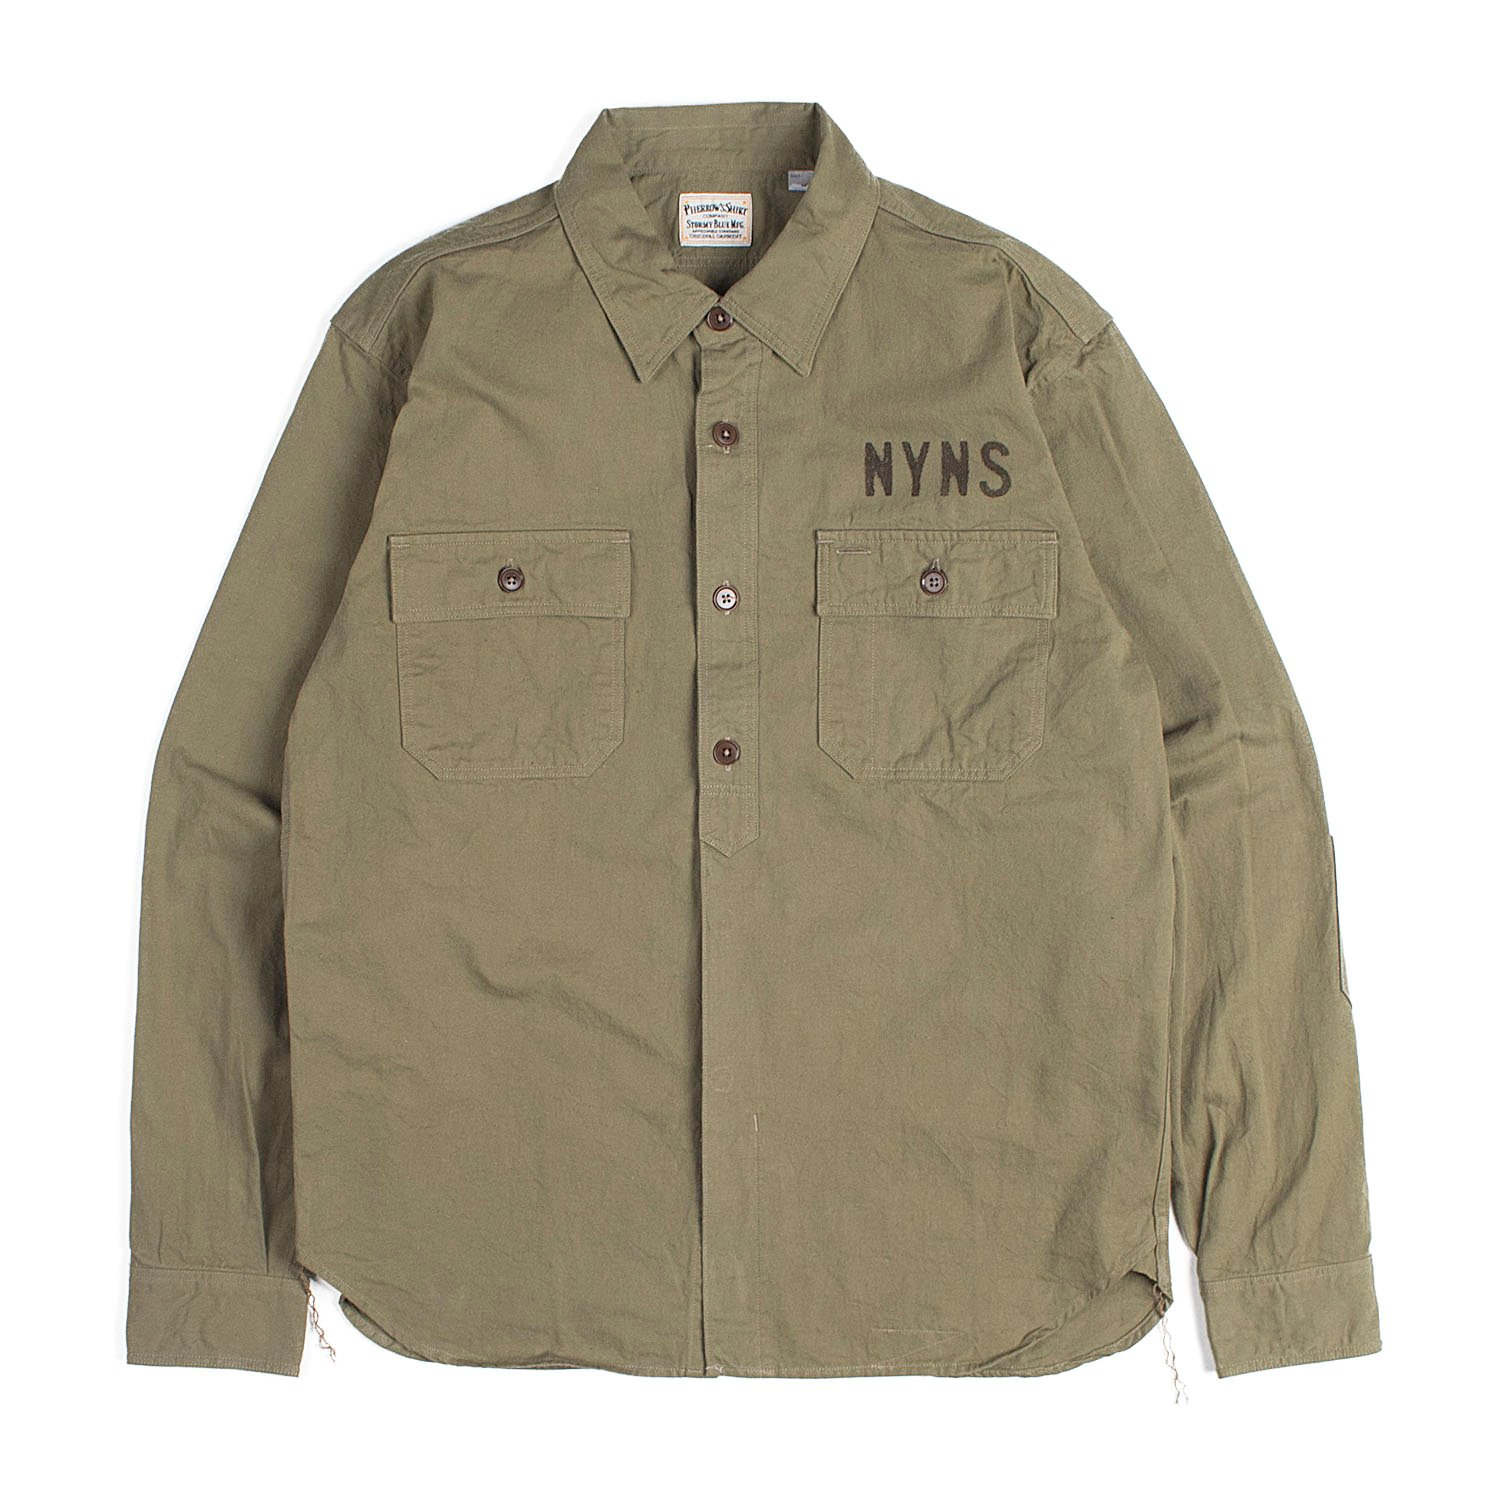 Pherrow's Army Work Shirts (Olive)